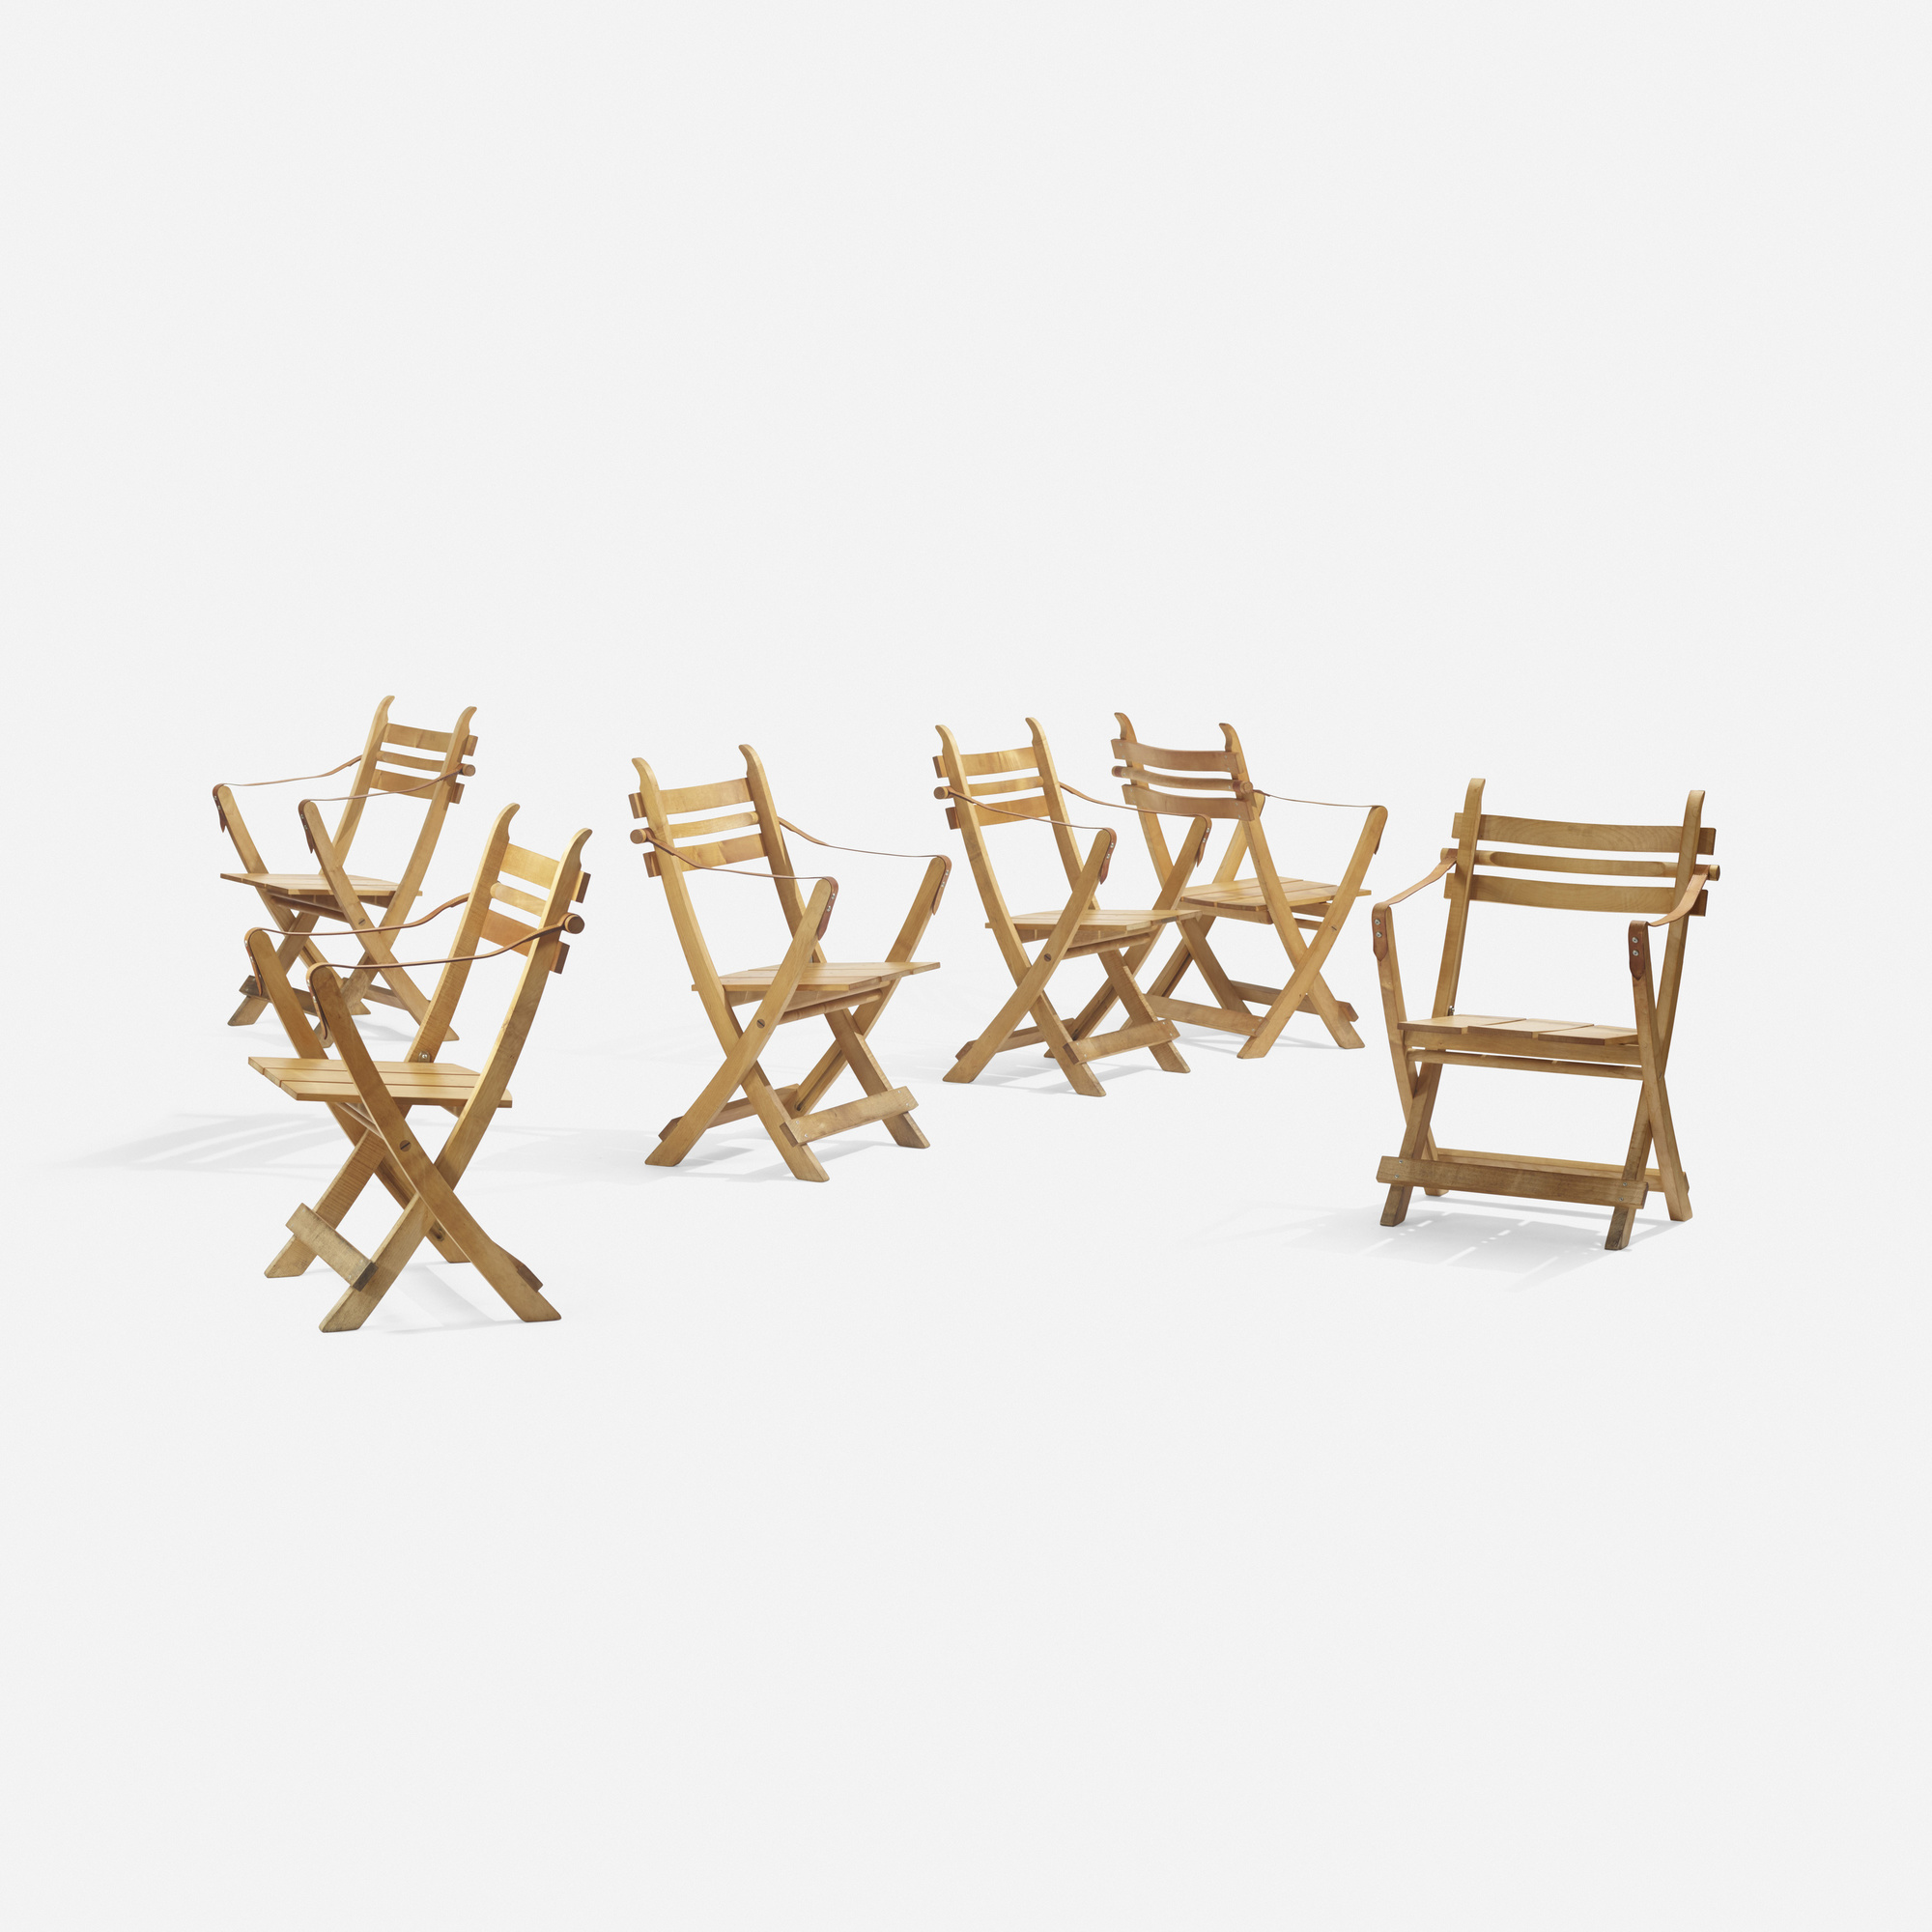 275: Hans J. Wegner / folding chairs, set of six (2 of 3)